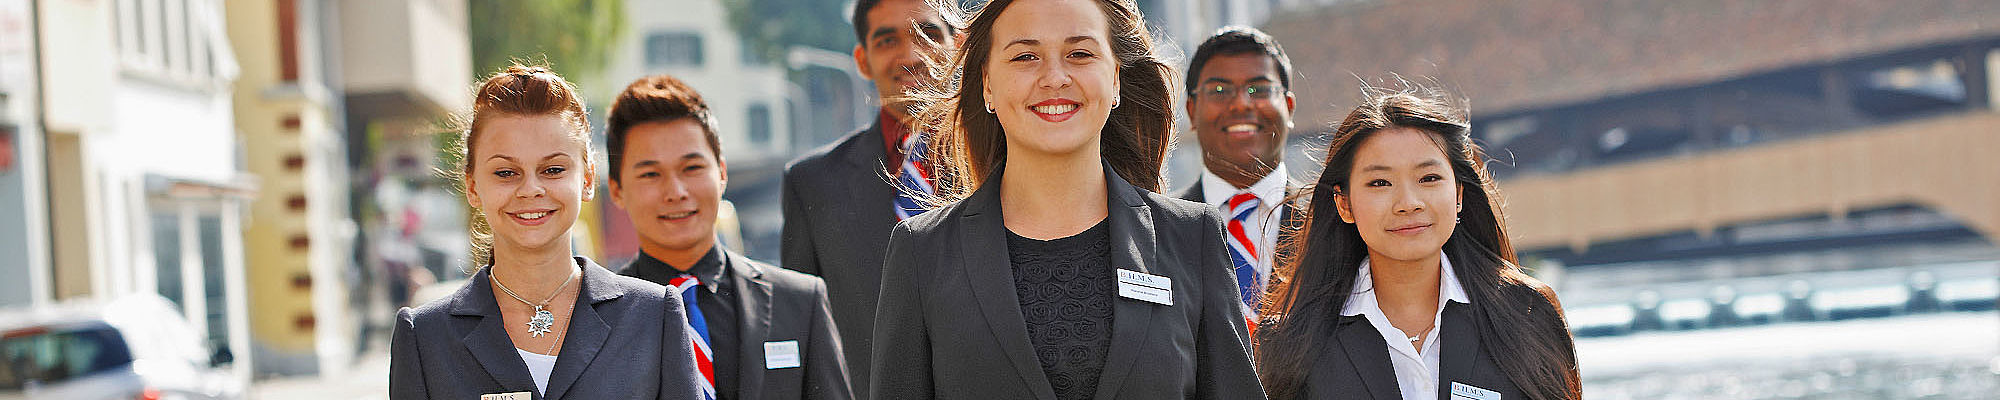 Admission for the study of hotel management at B.H.M.S.